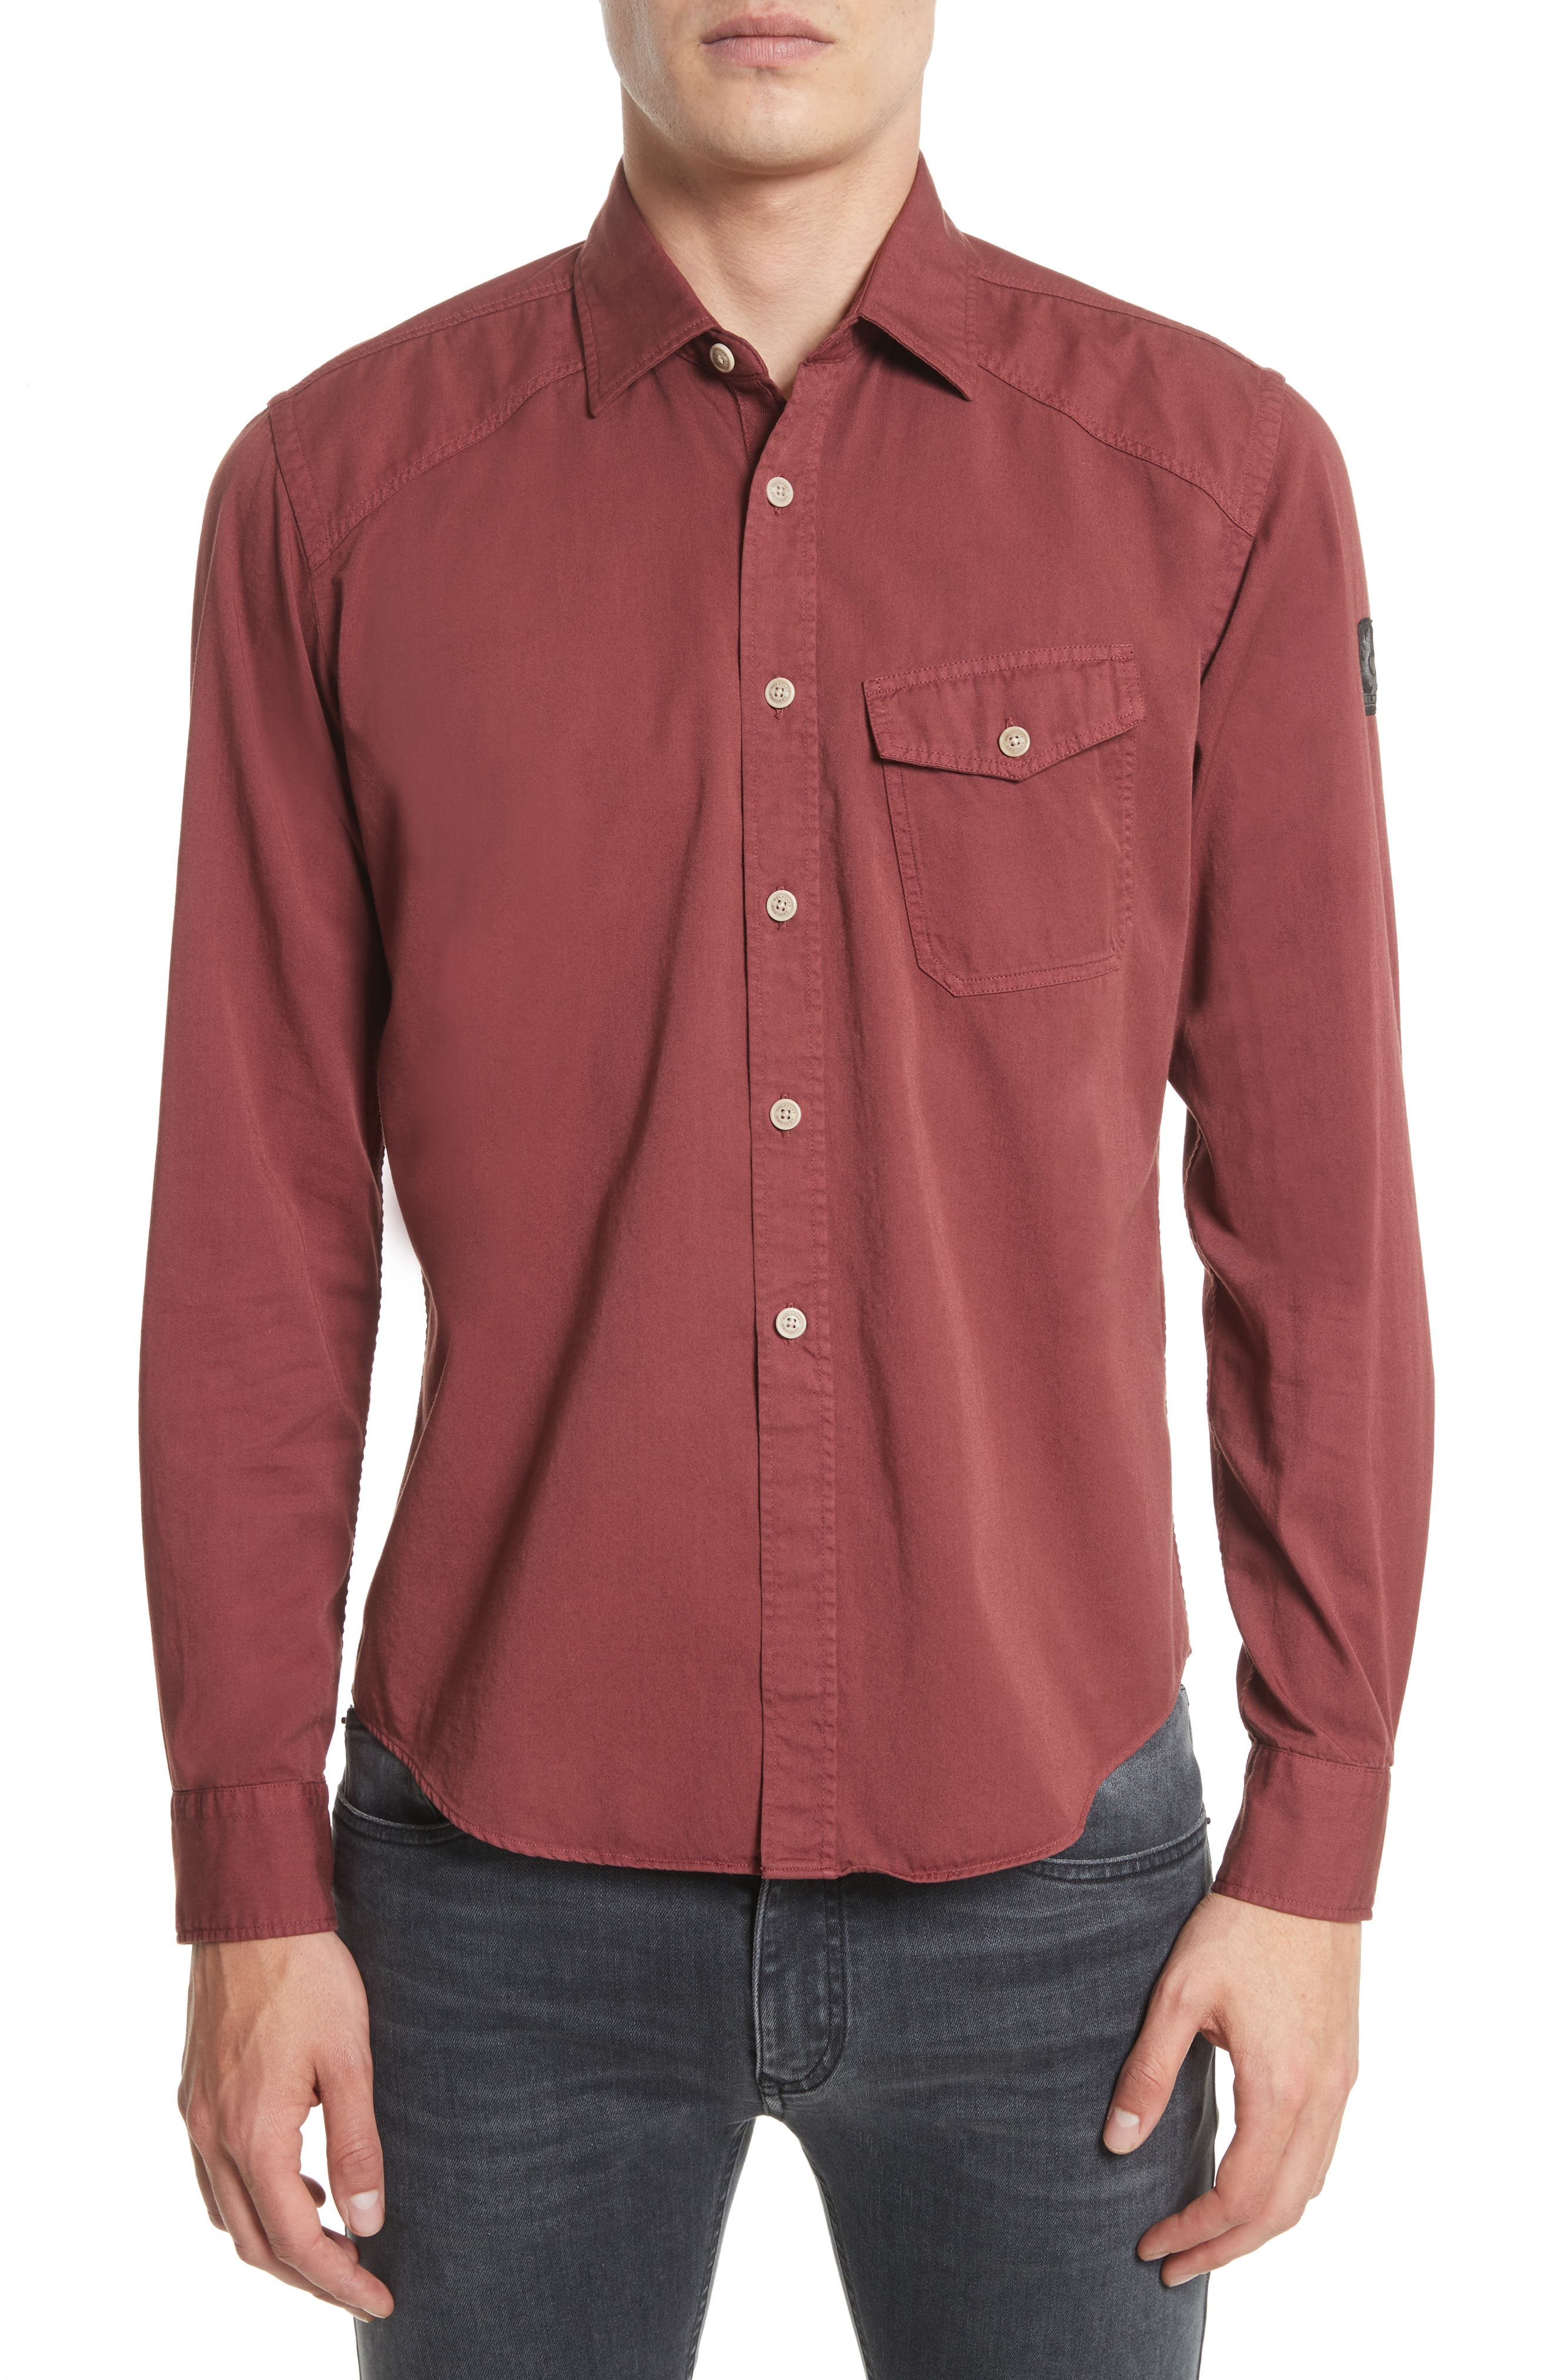 Steadway Extra Slim Fit Sport Shirt,                             Main thumbnail 4, color,